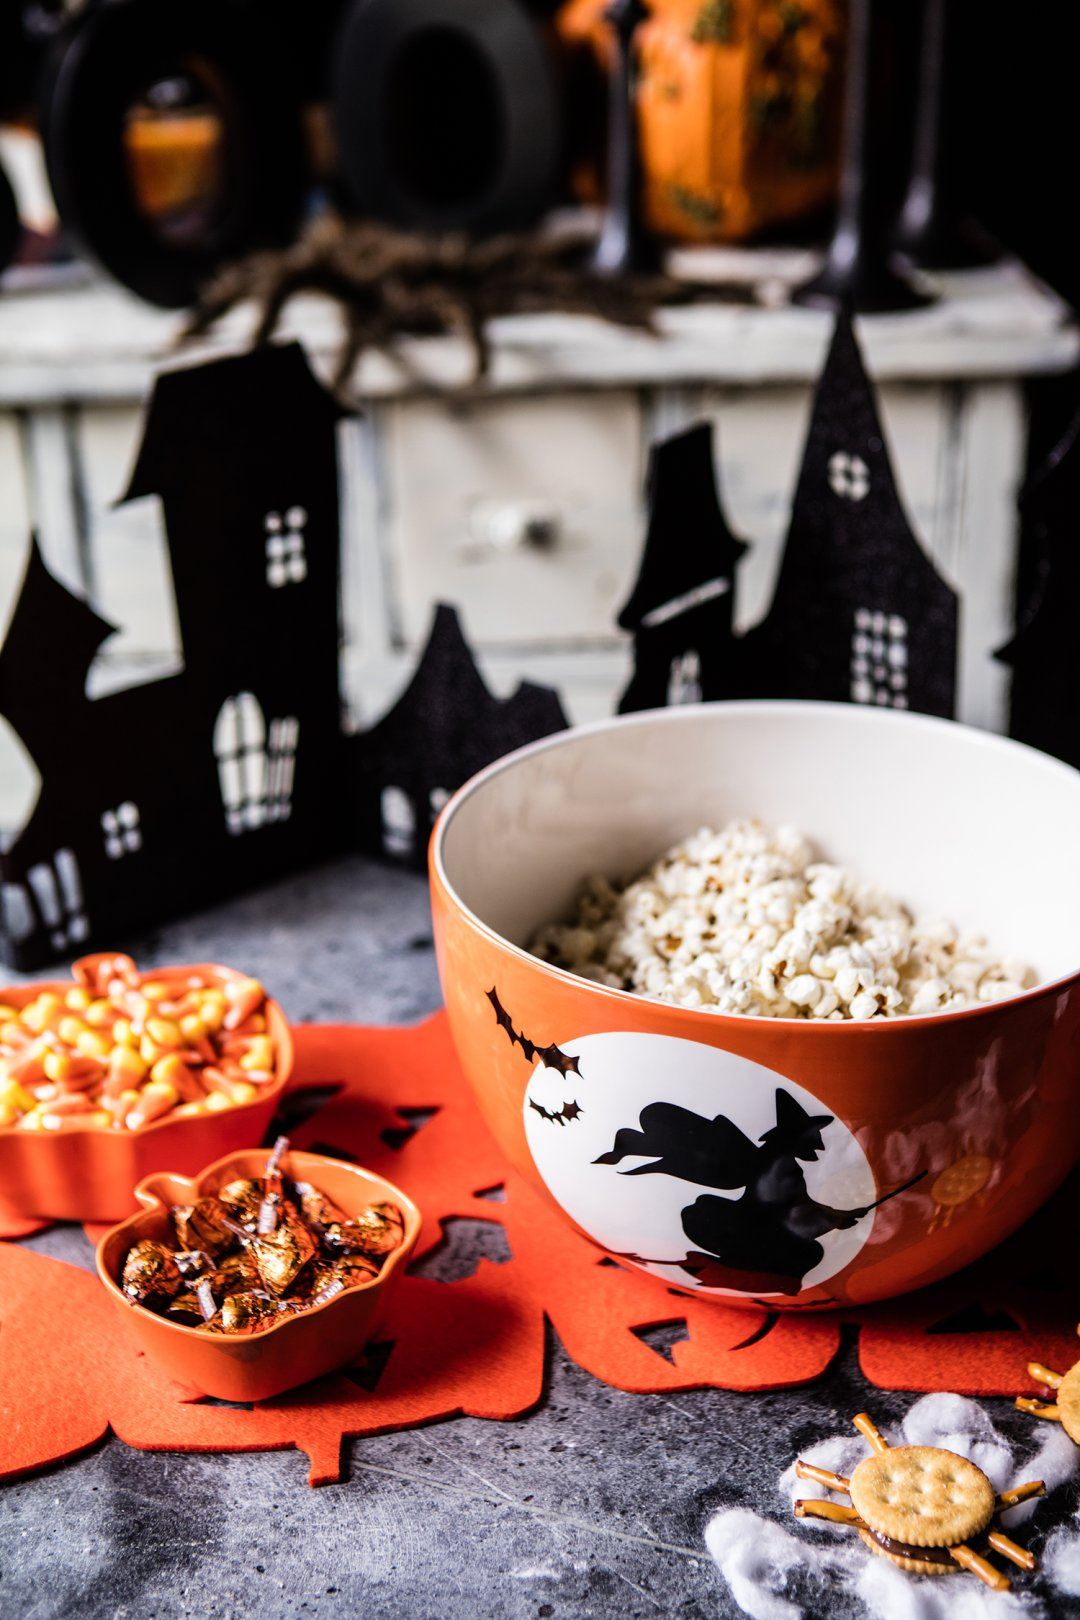 Popcorn, candy corn and chocolates in orange halloween bowls on the snack table